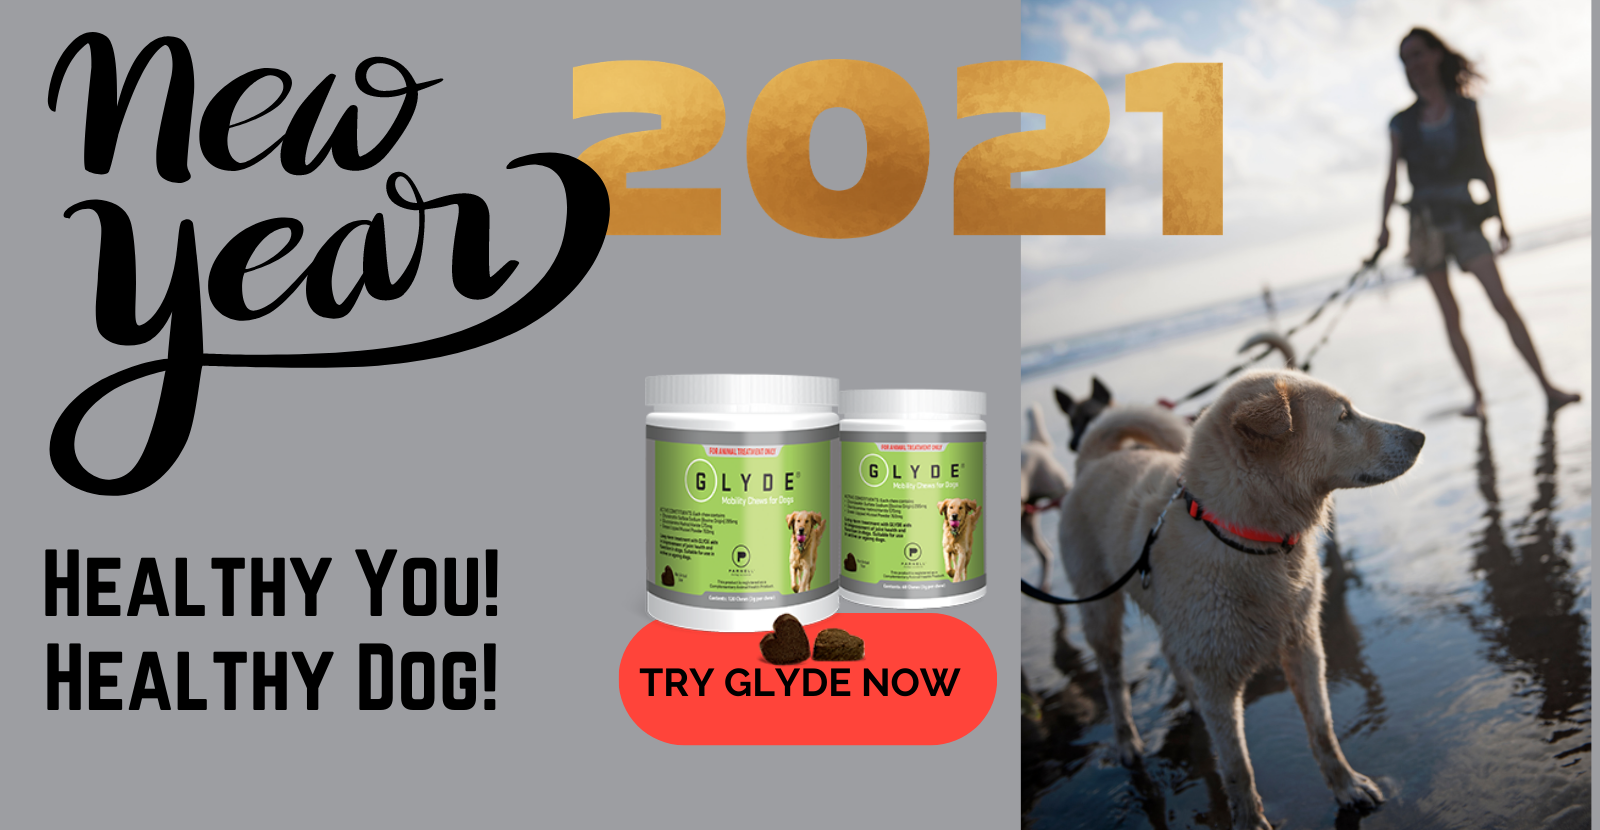 Happy New Year! Try Glyde